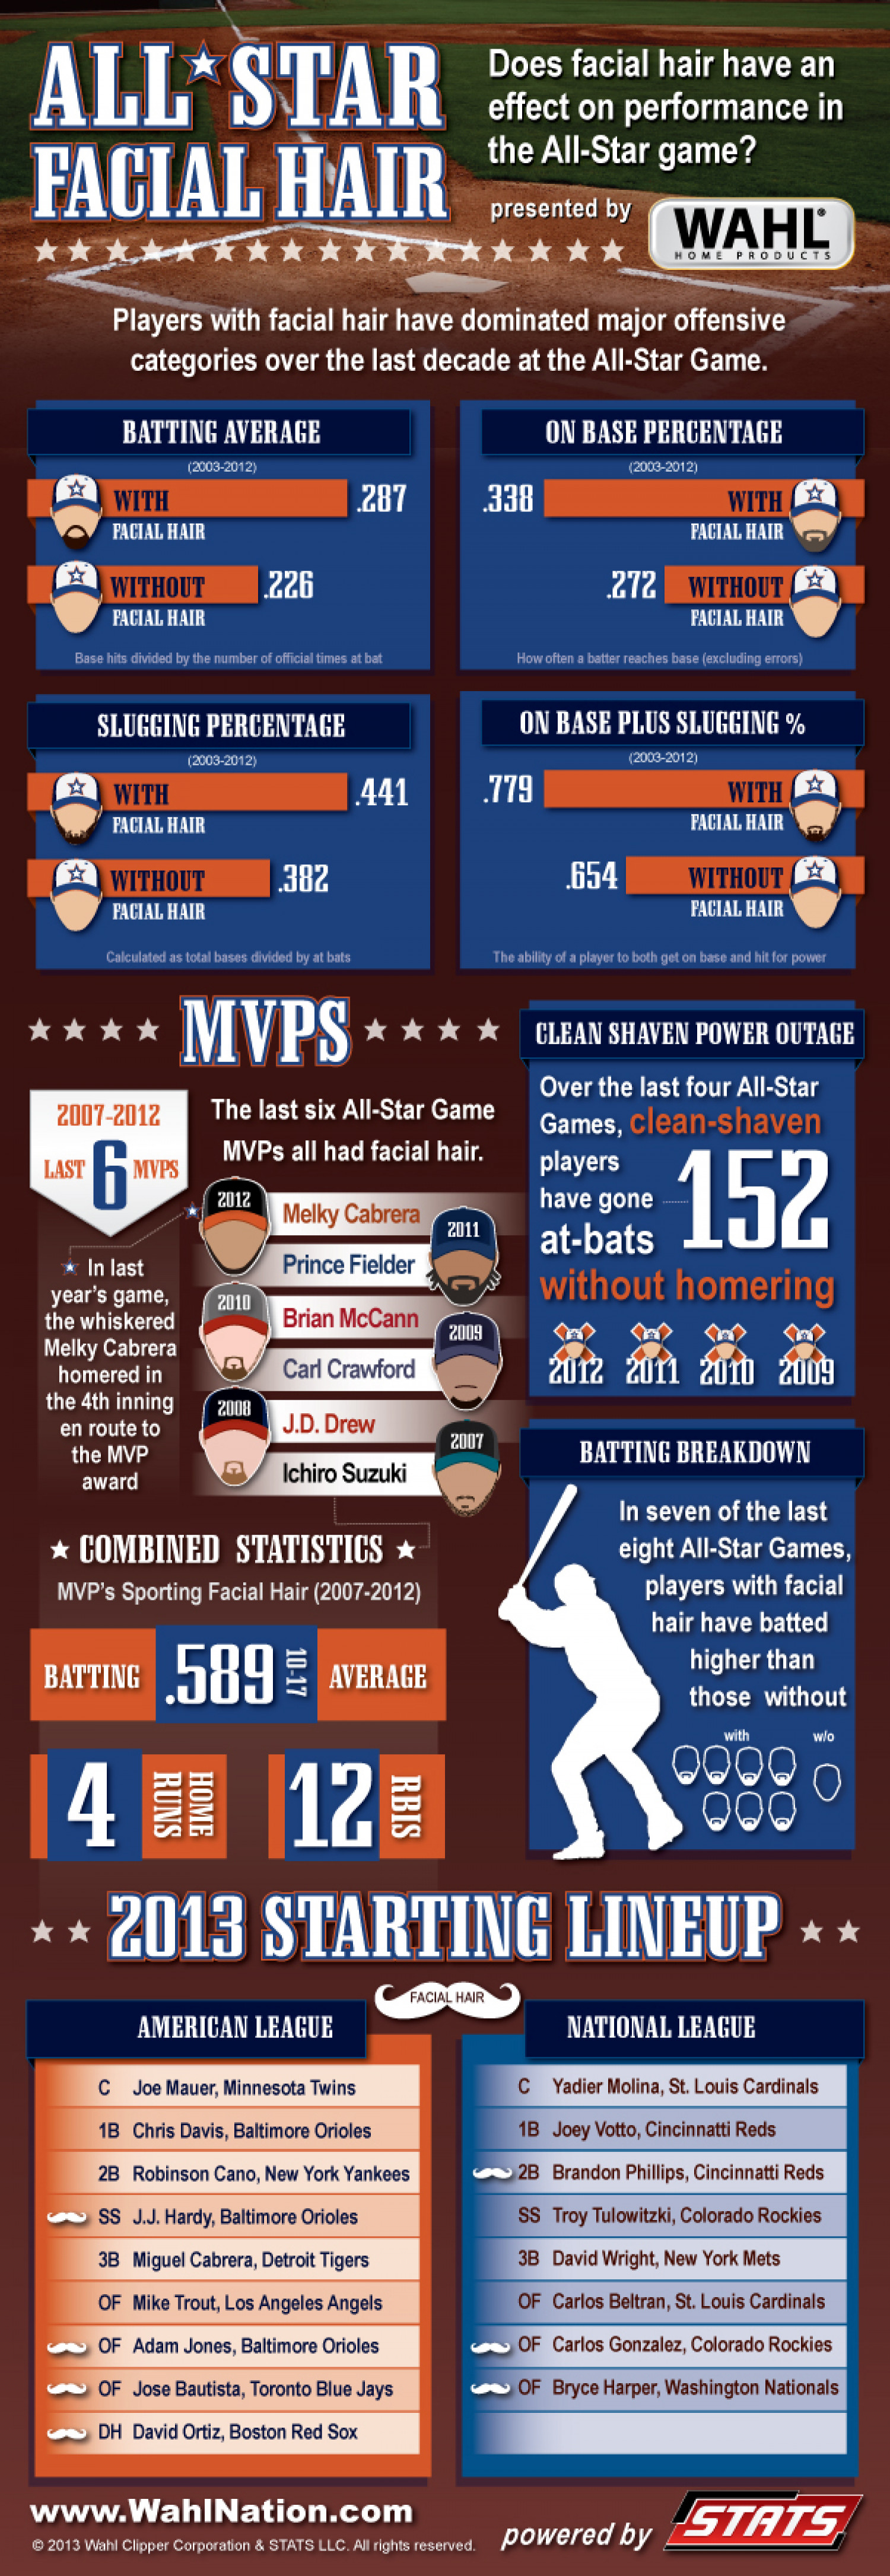 All-Star Facial Hair Infographic